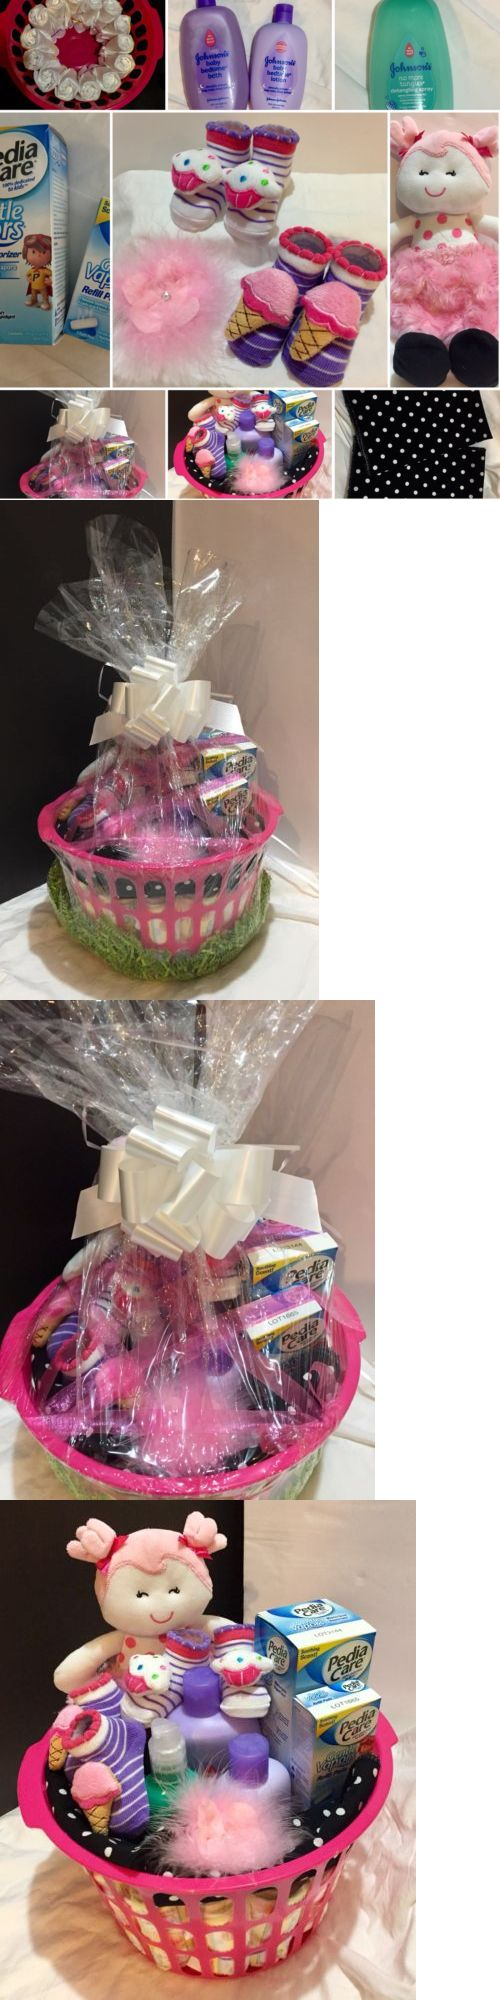 Gift Sets 134756: New Baby Girl Gift Basket, Birth Gift, New Mother Gift, Hospital Gift For Baby -> BUY IT NOW ONLY: $99.79 on eBay!